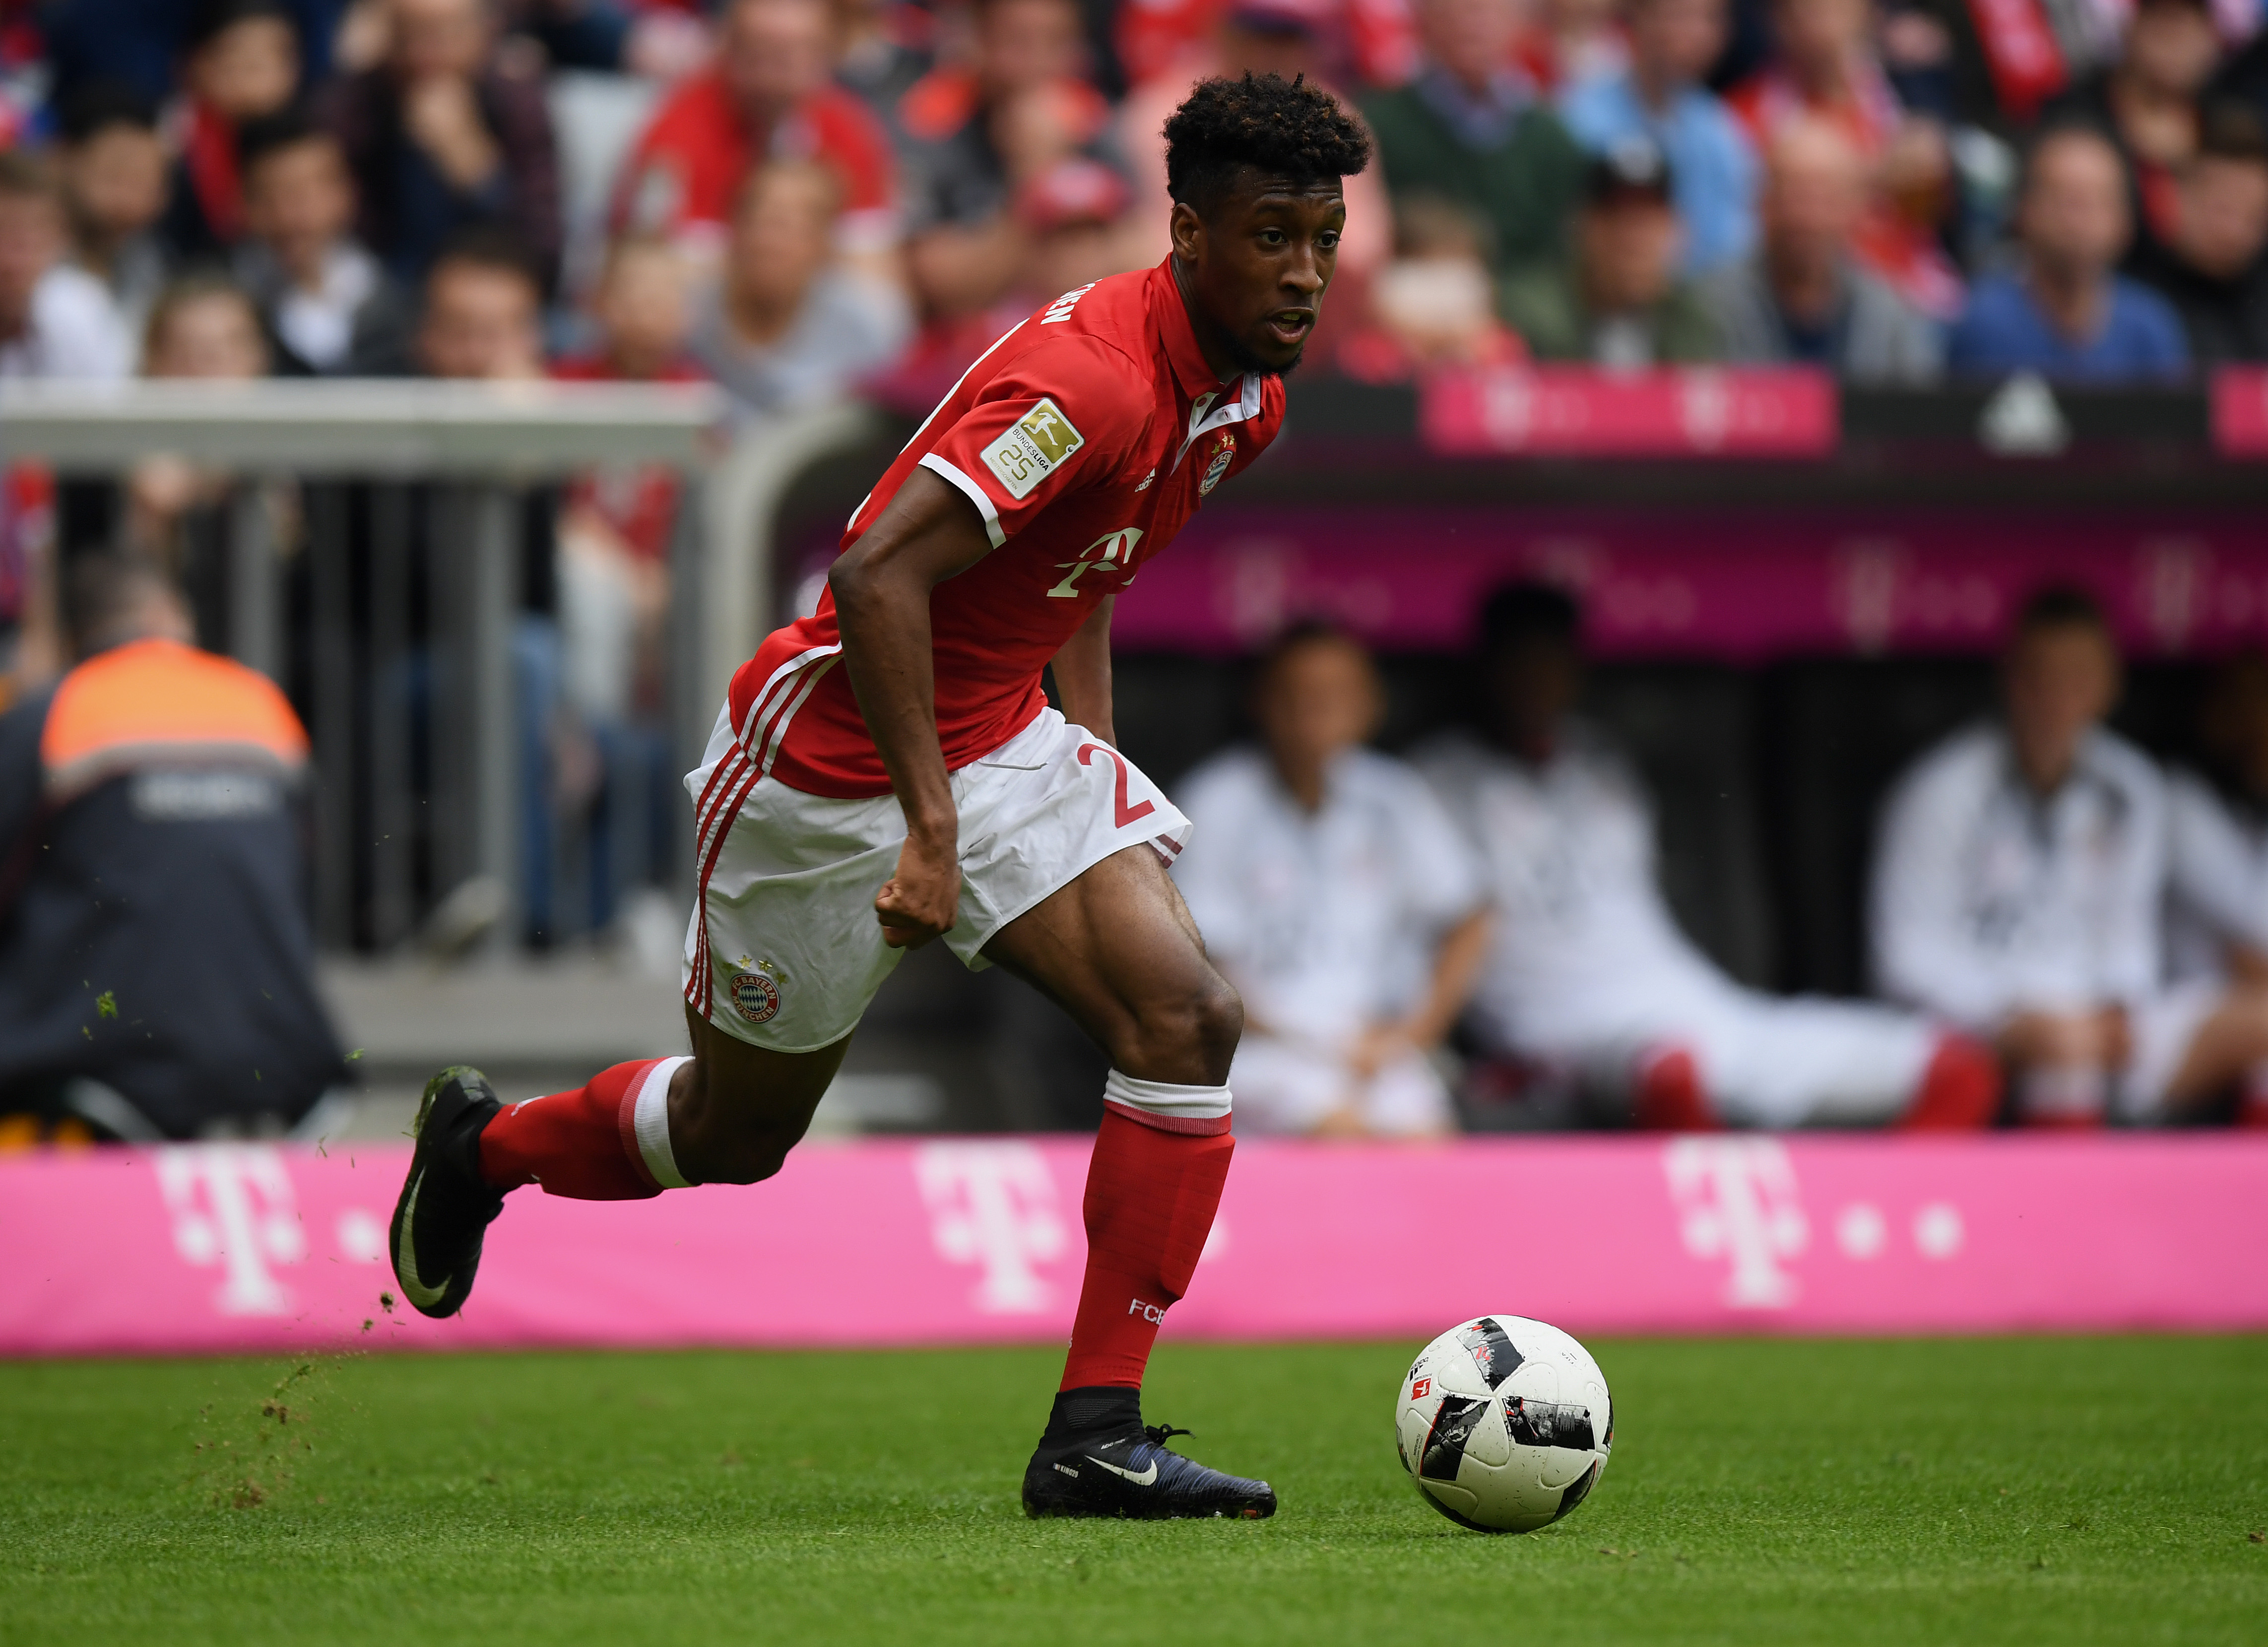 Could Coman be the solution for Real Madrid's wing woes? (Photo by Matthias Hangst/Bongarts/Getty Images)